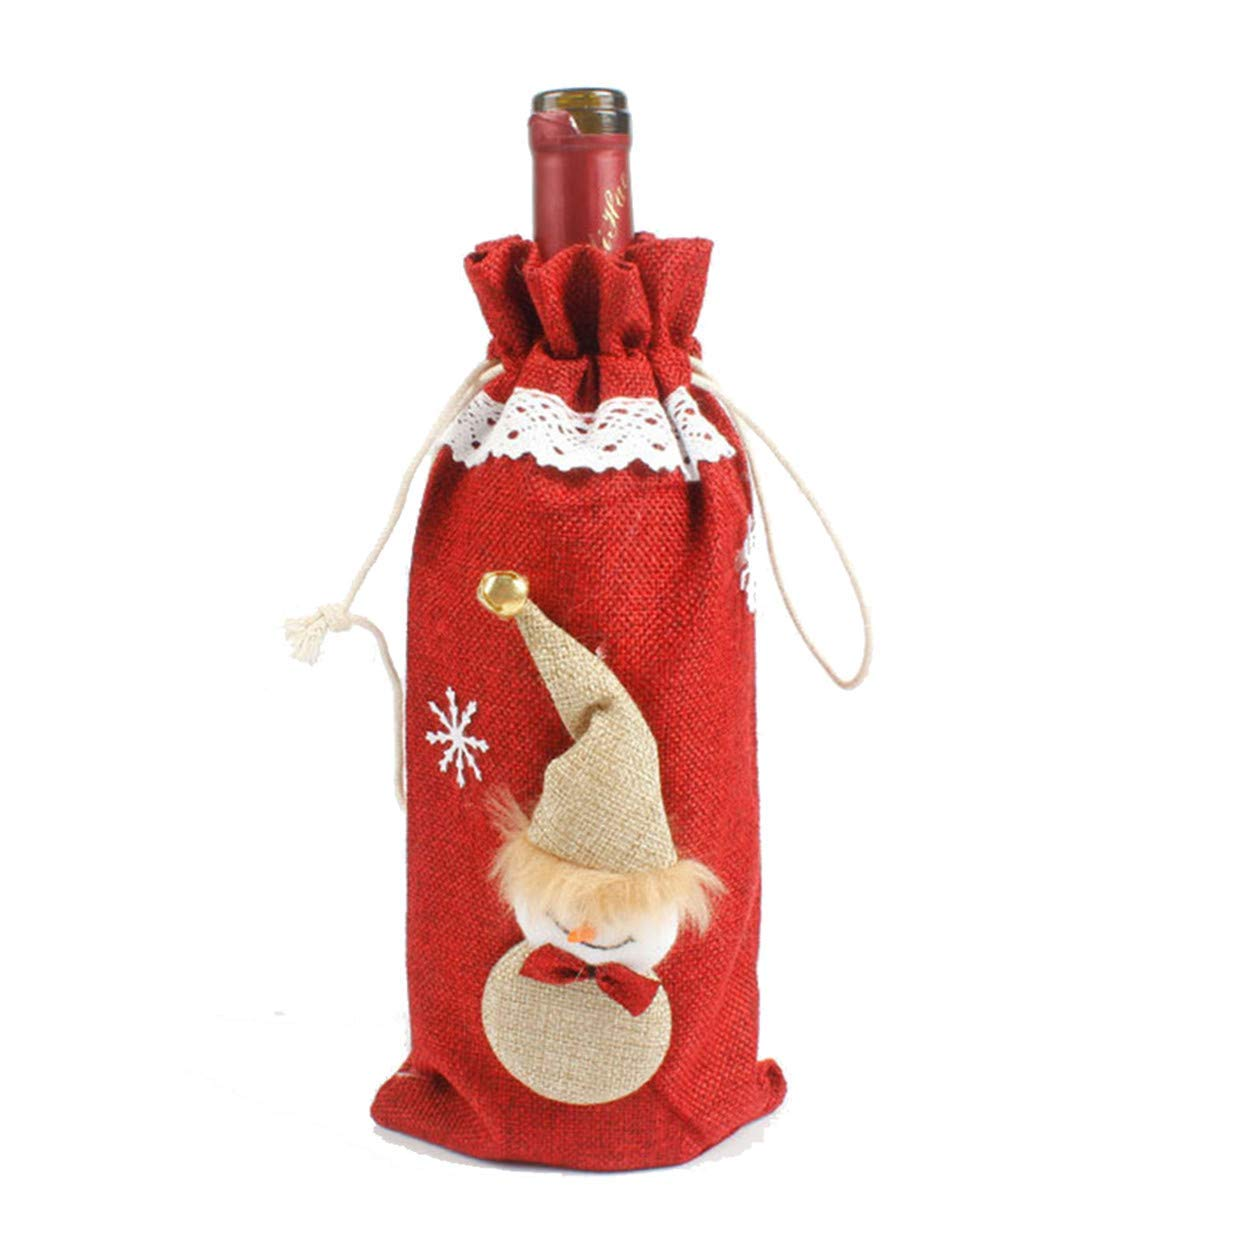 Xeminor Creative Christmas Wine Bottle Set Gift Bag Home Table Decorationsred